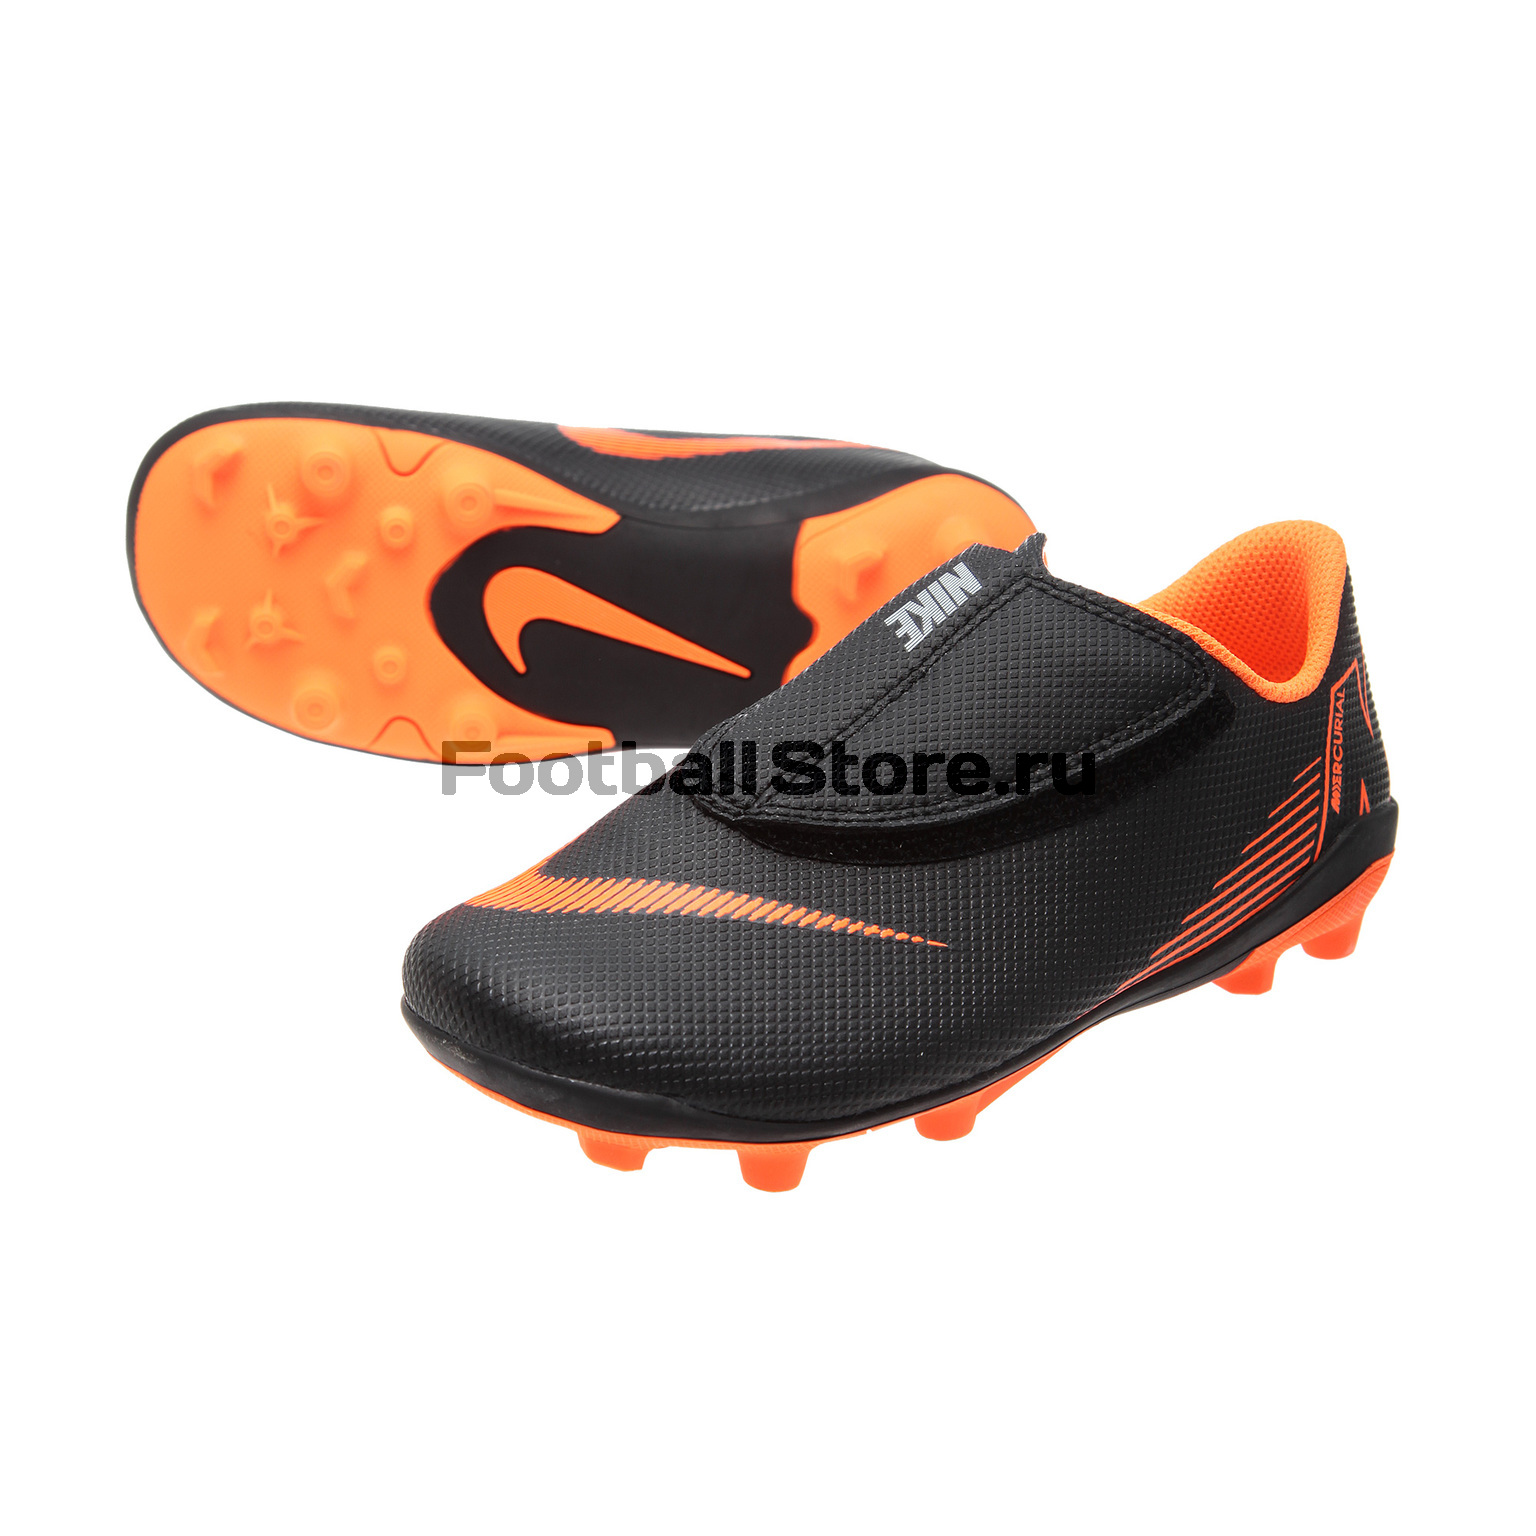 Бутсы Nike JR Vapor 12 Club PS FG/MG AH7351-081 детские бутсы nike бутсы nike jr phantom 3 elite df fg ah7292 081